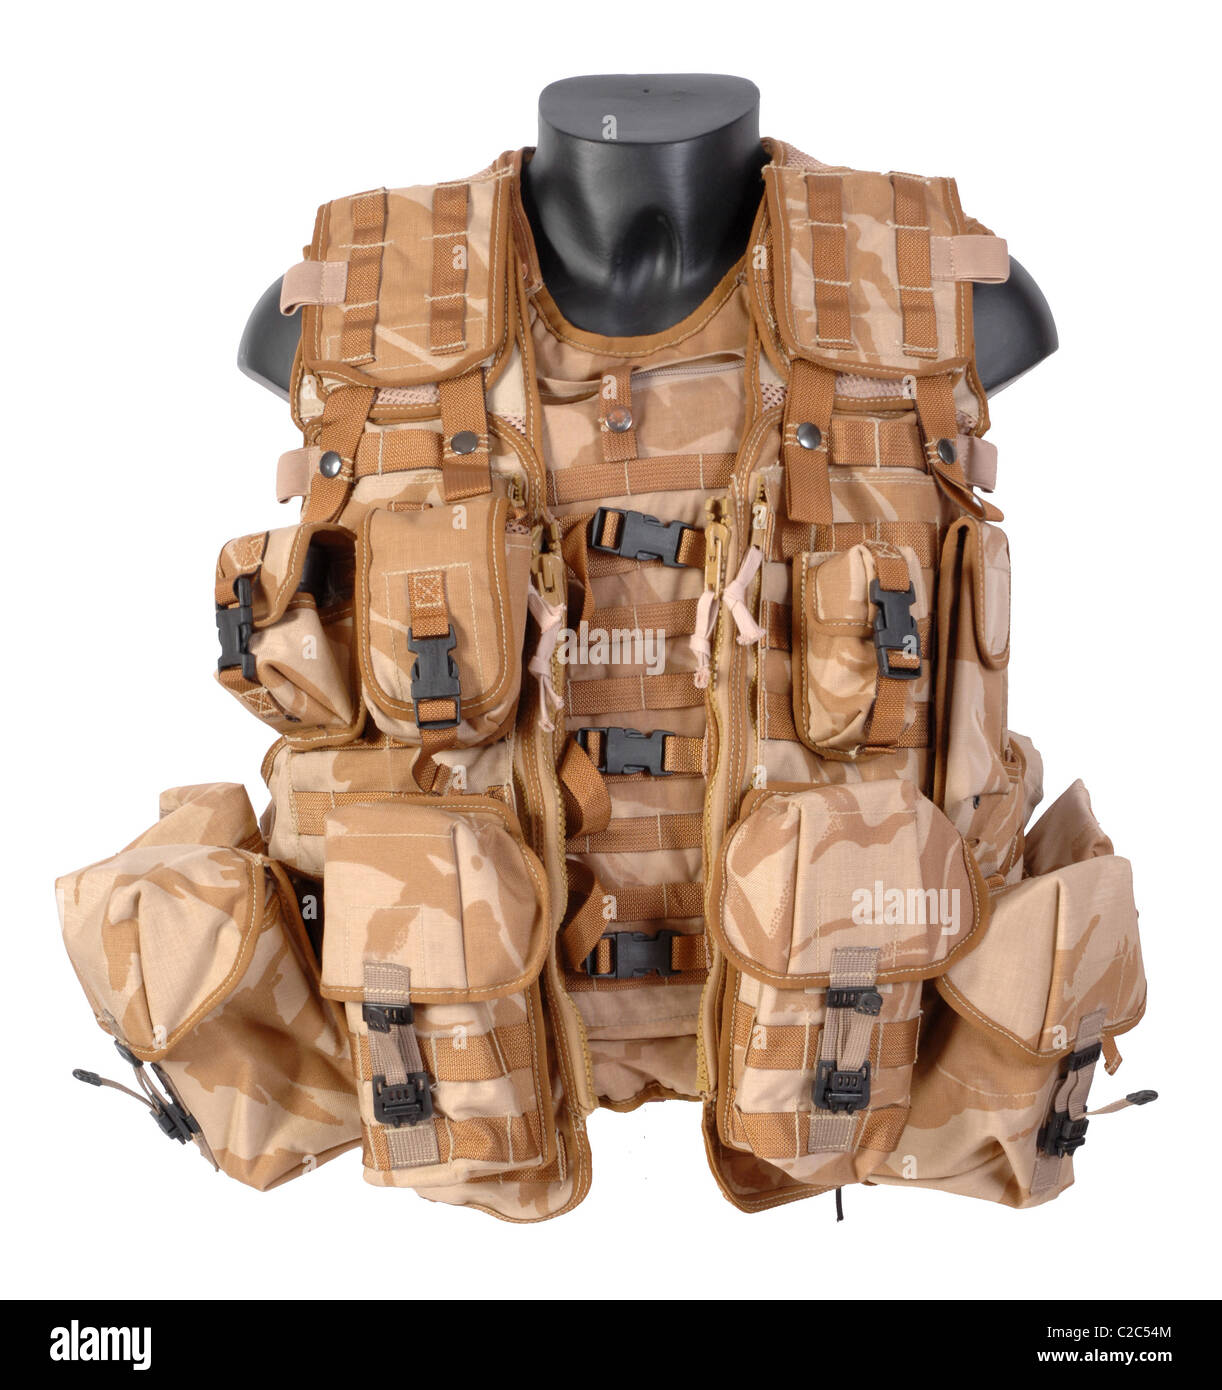 Osprey Mk II body armour vest. Worn over the armour is the Vest, Tactical, Load Carrying designed to be worn with - Stock Image